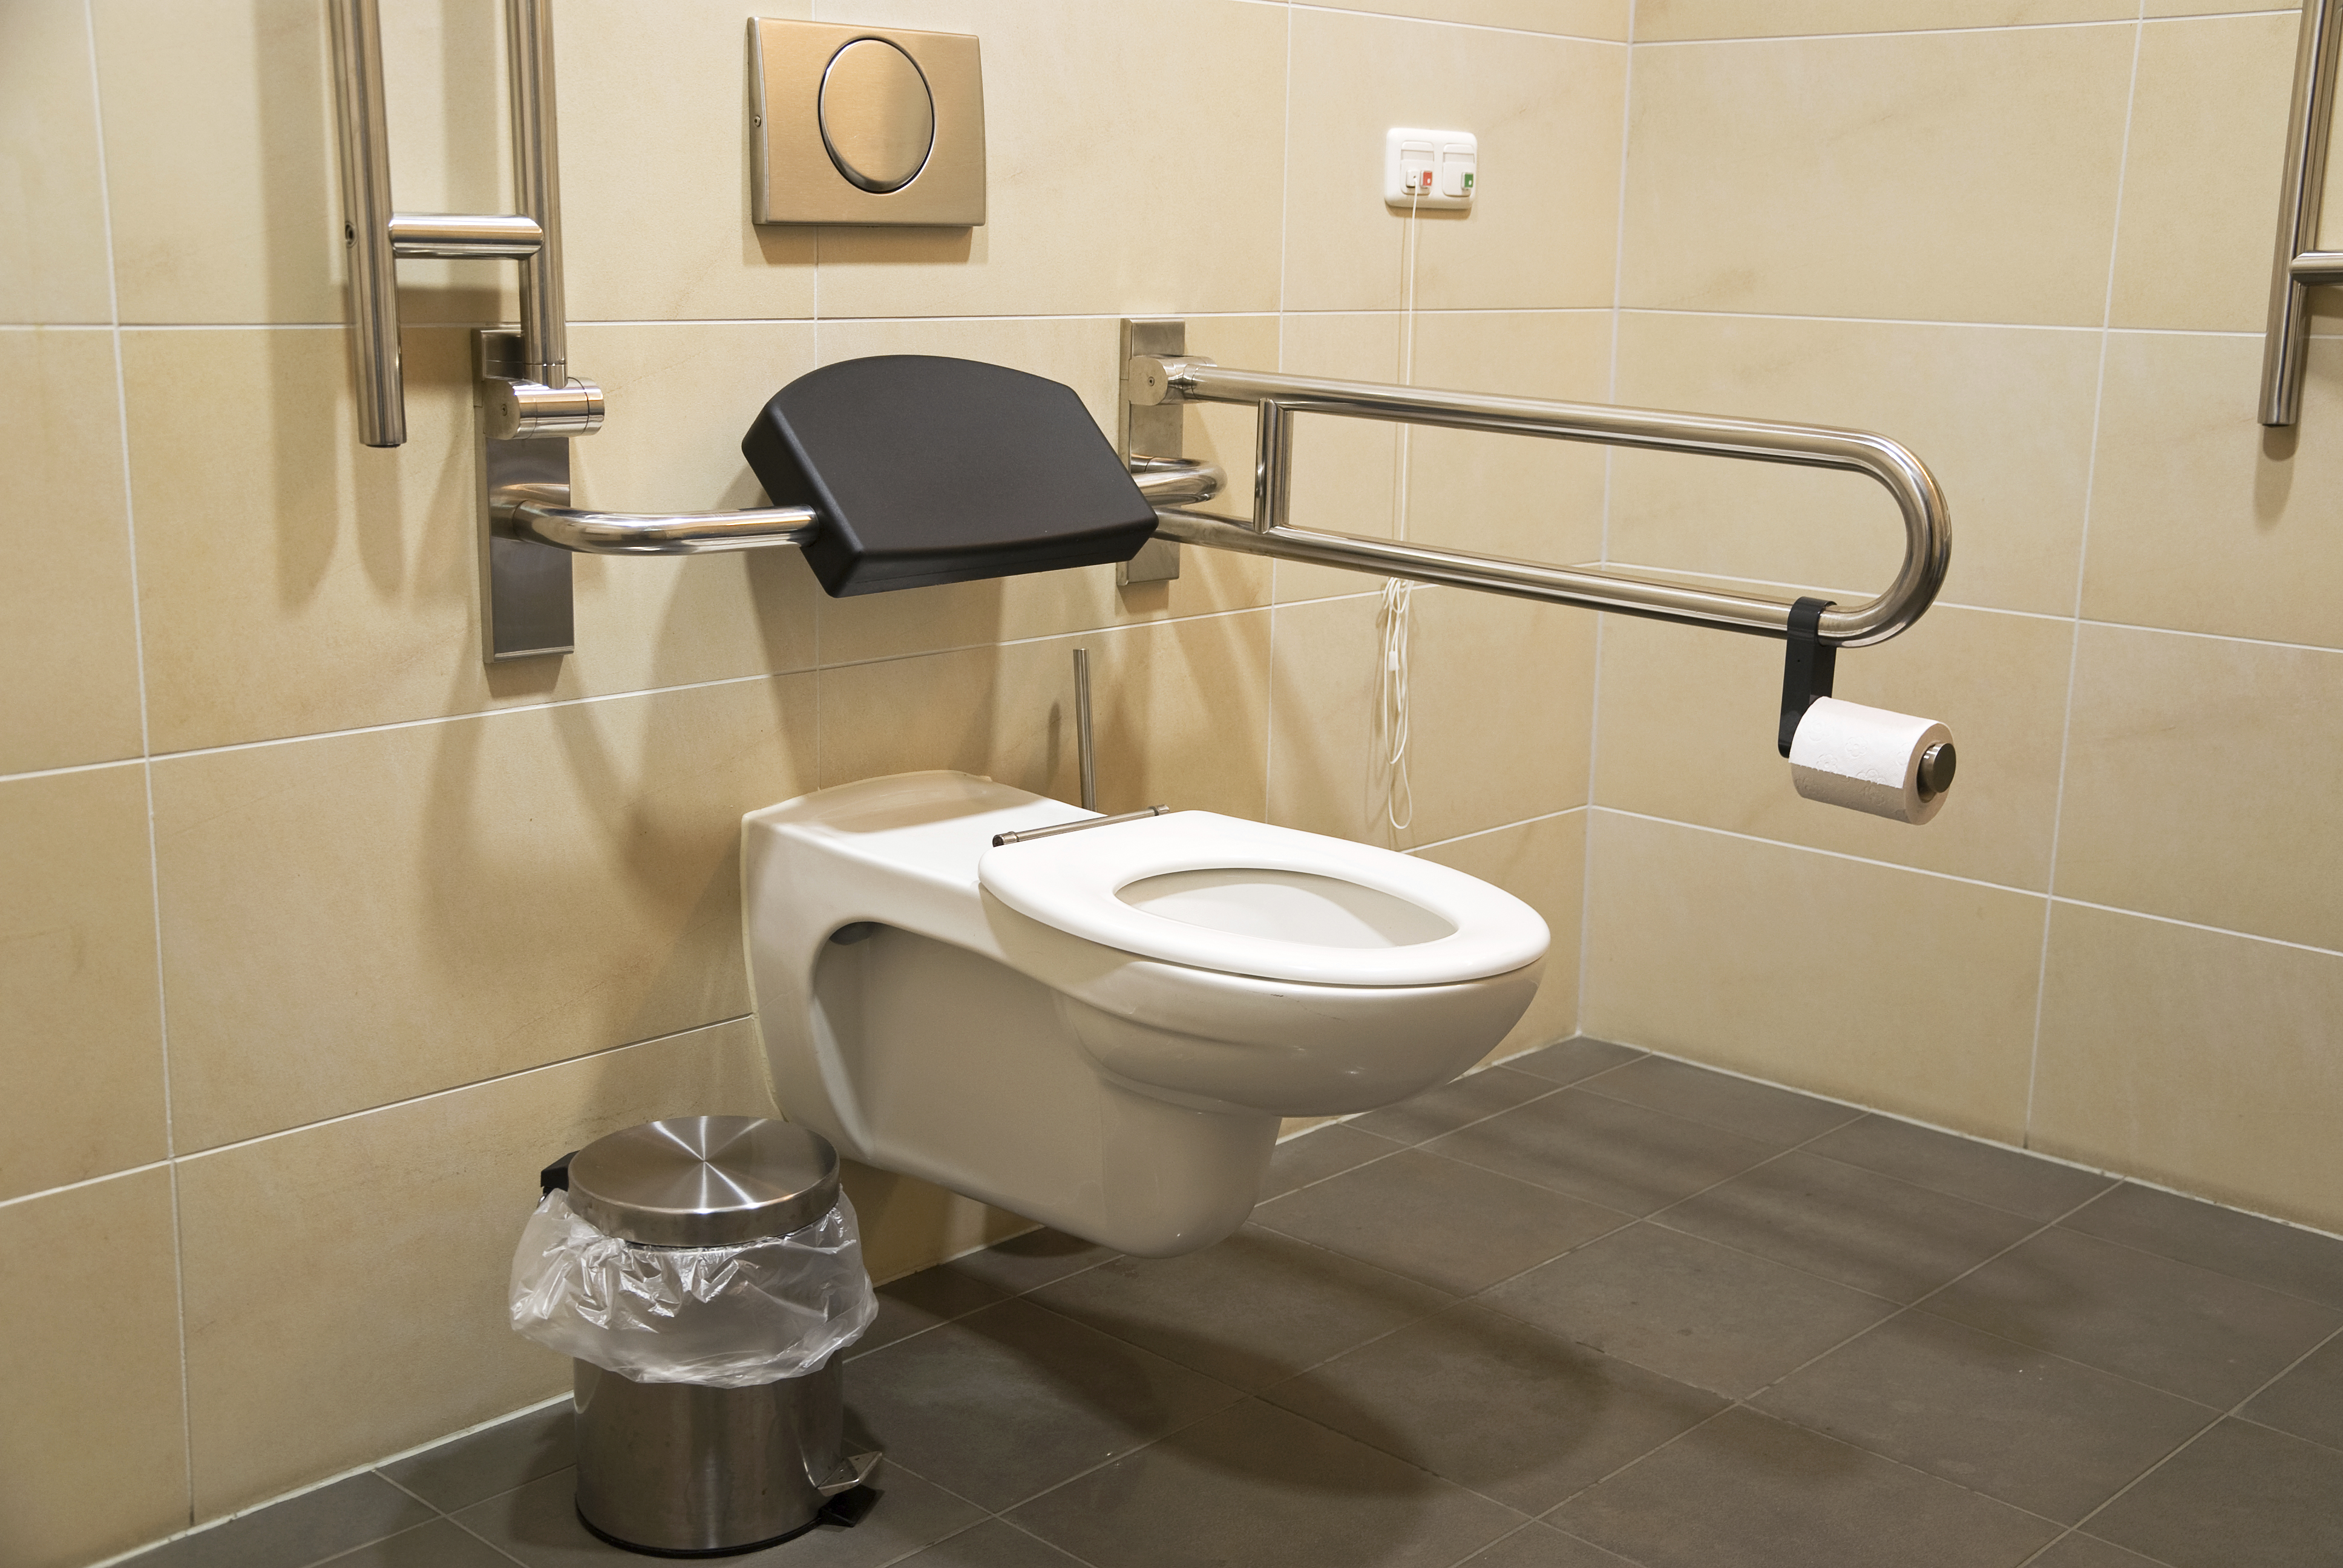 bathroom safety for seniors. Bathroom Safety For Seniors. Fall Prevention Falls In One Of The Most Common Ways Seniors